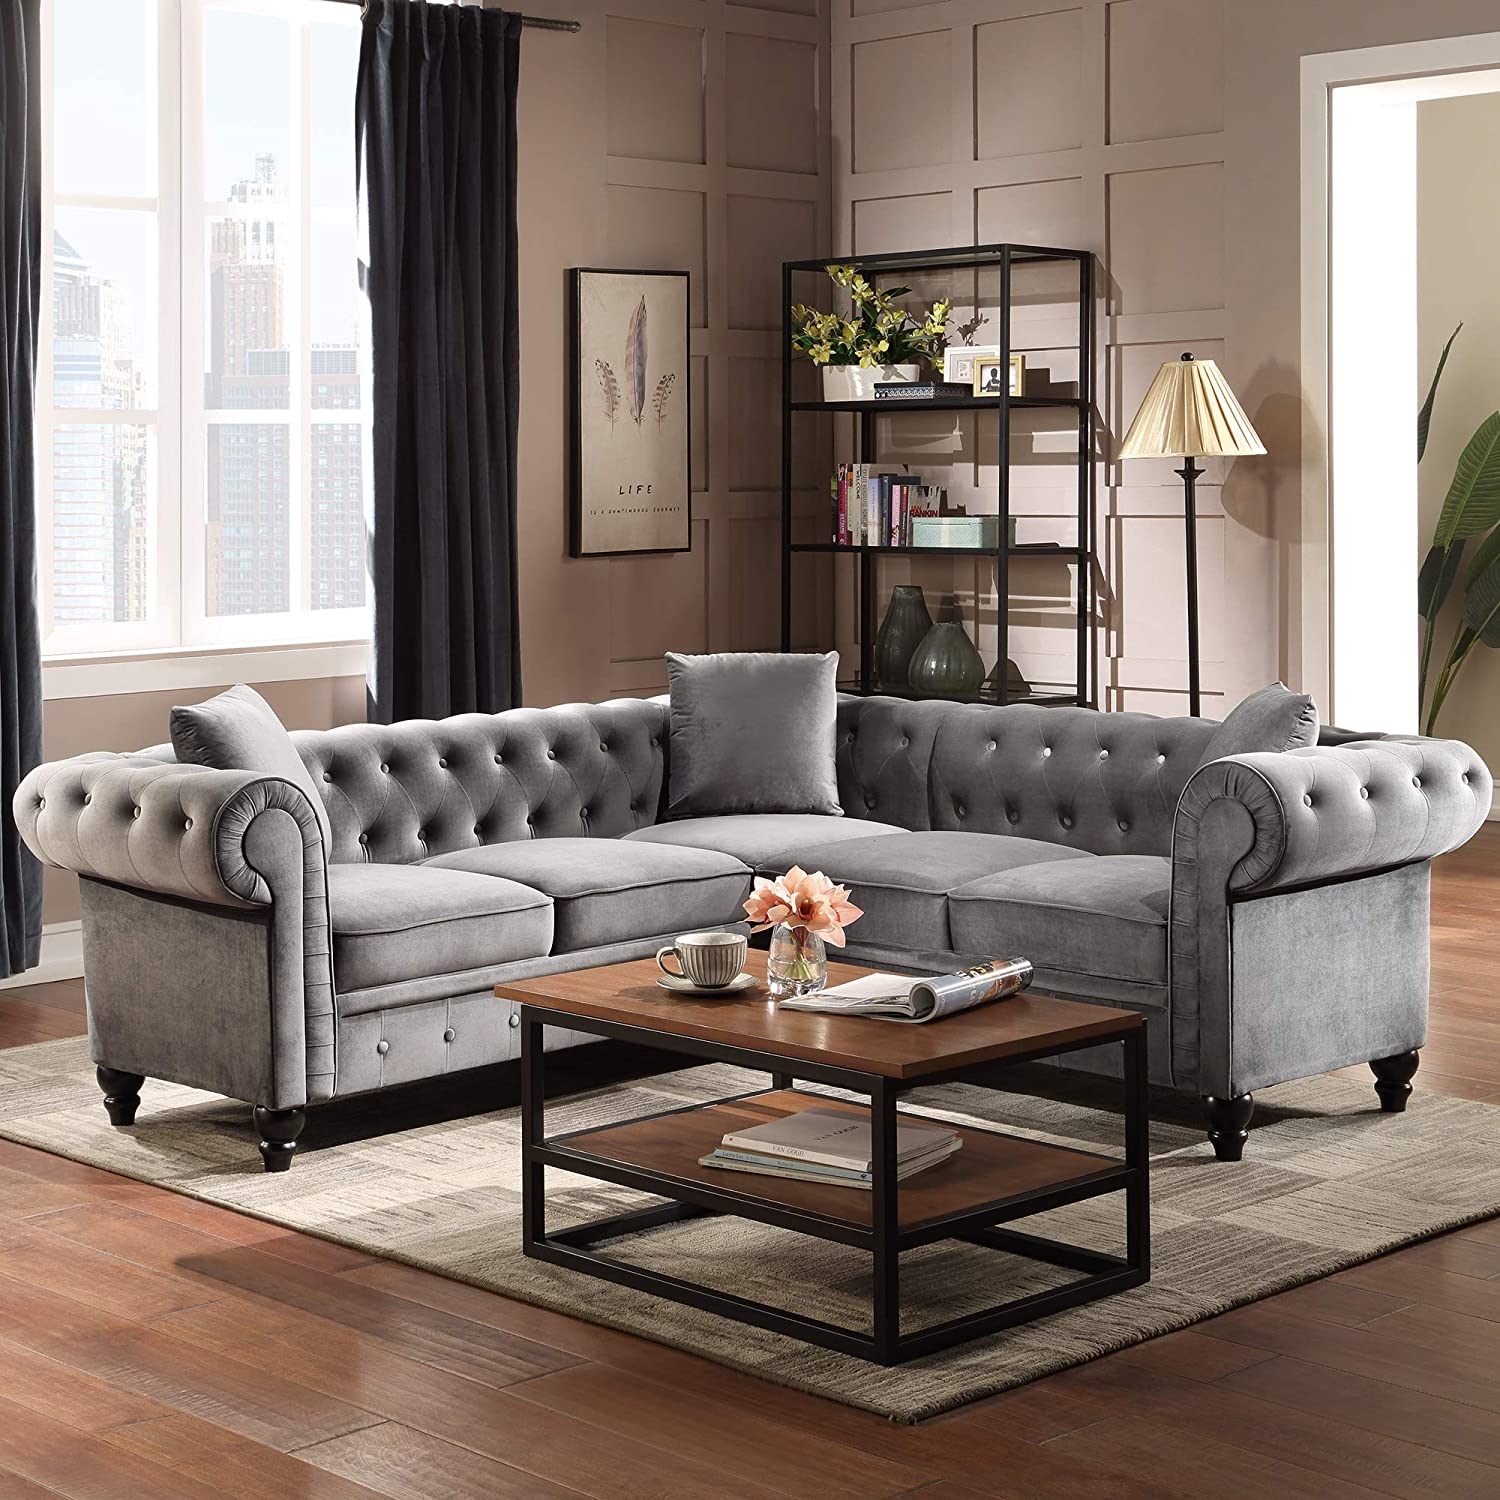 Amazon Com P Purlove Chesterfield Sectional Sofa Tufted Velvet Sectional Sofa Velvet Sofa With Upholstered Rolled Arm For Living Room 3 Pillows Included Kitchen Dining